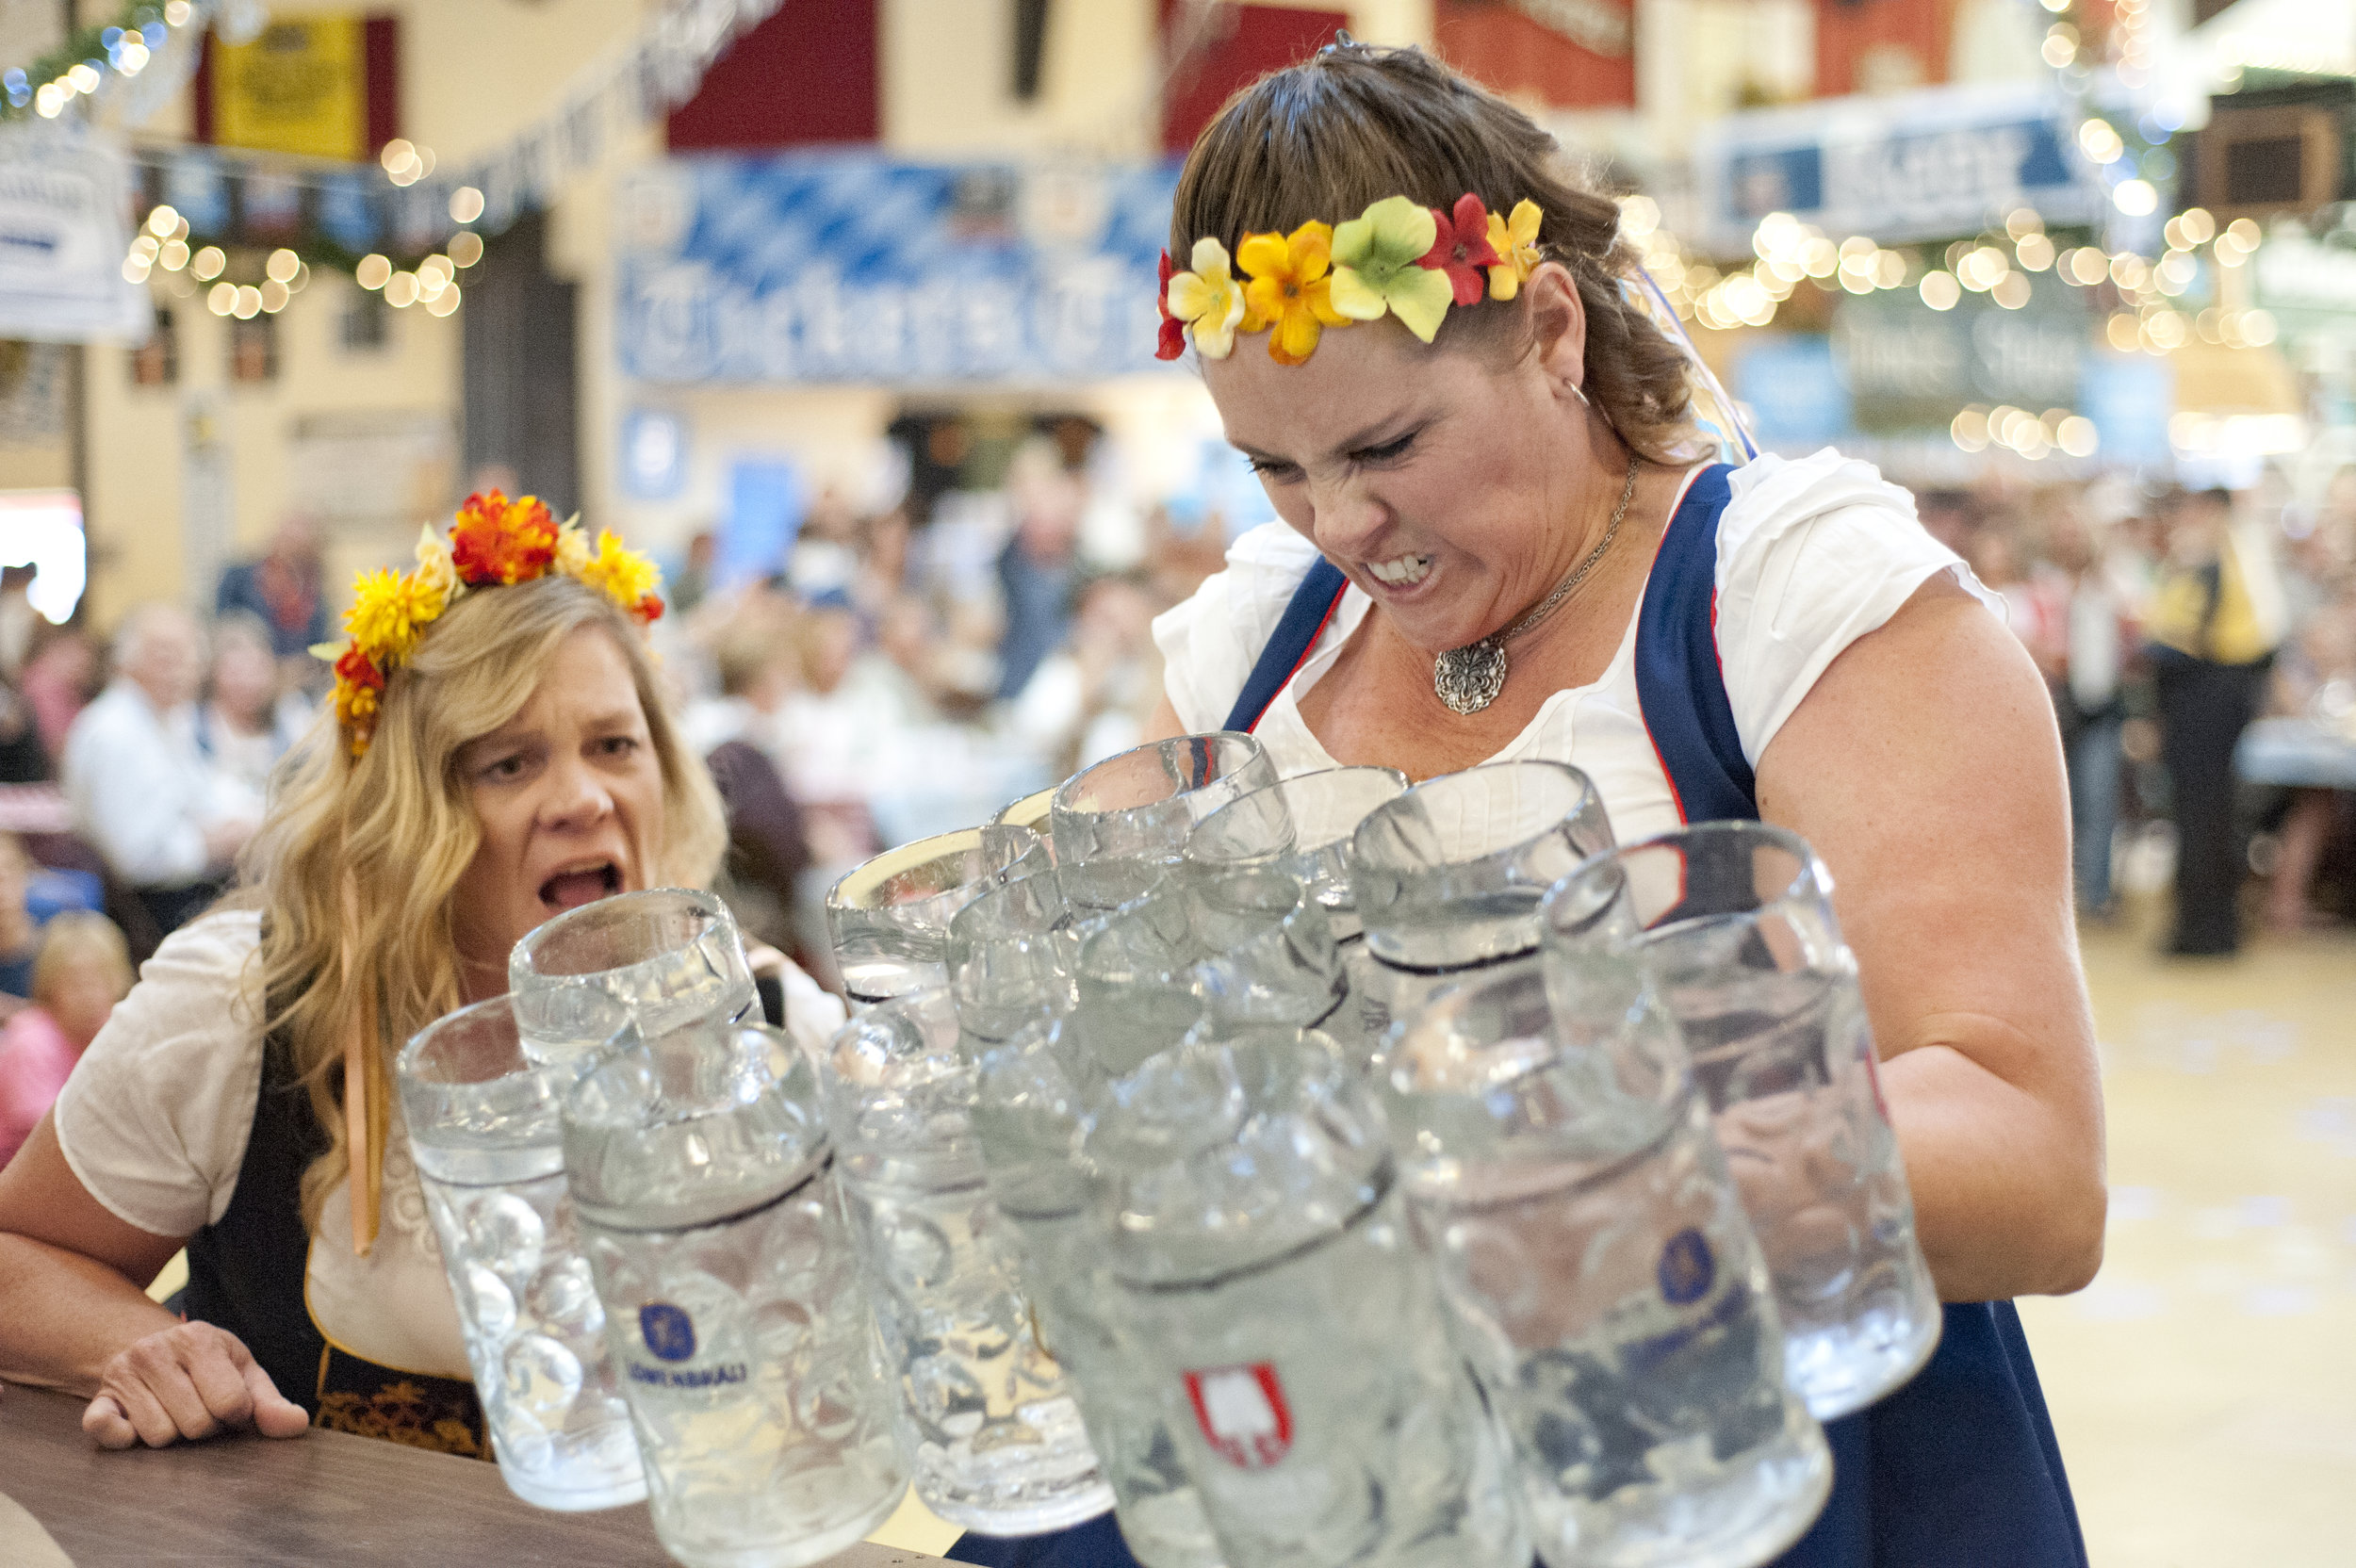 Melissa Tangeman, right, struggles to pick up the 15 water-filled steins during the finals of the Queen Stein Carrying Contest at Big Bear Lake Oktoberfest Oct. 8, 2016. Tangeman was second runner-up in the competition.